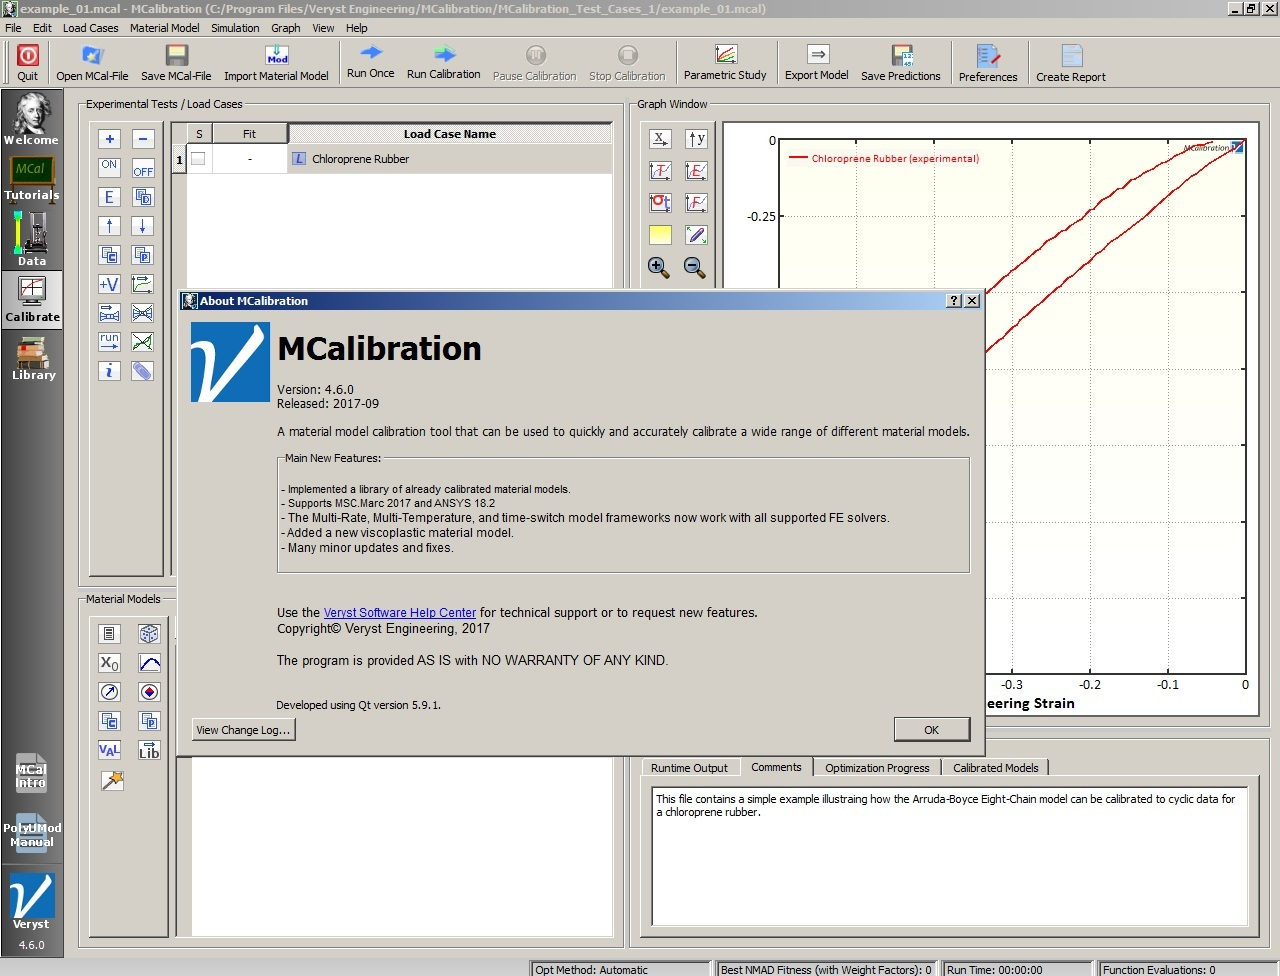 Working with Veryst Engineering PolyUMod 4.6.0 full license